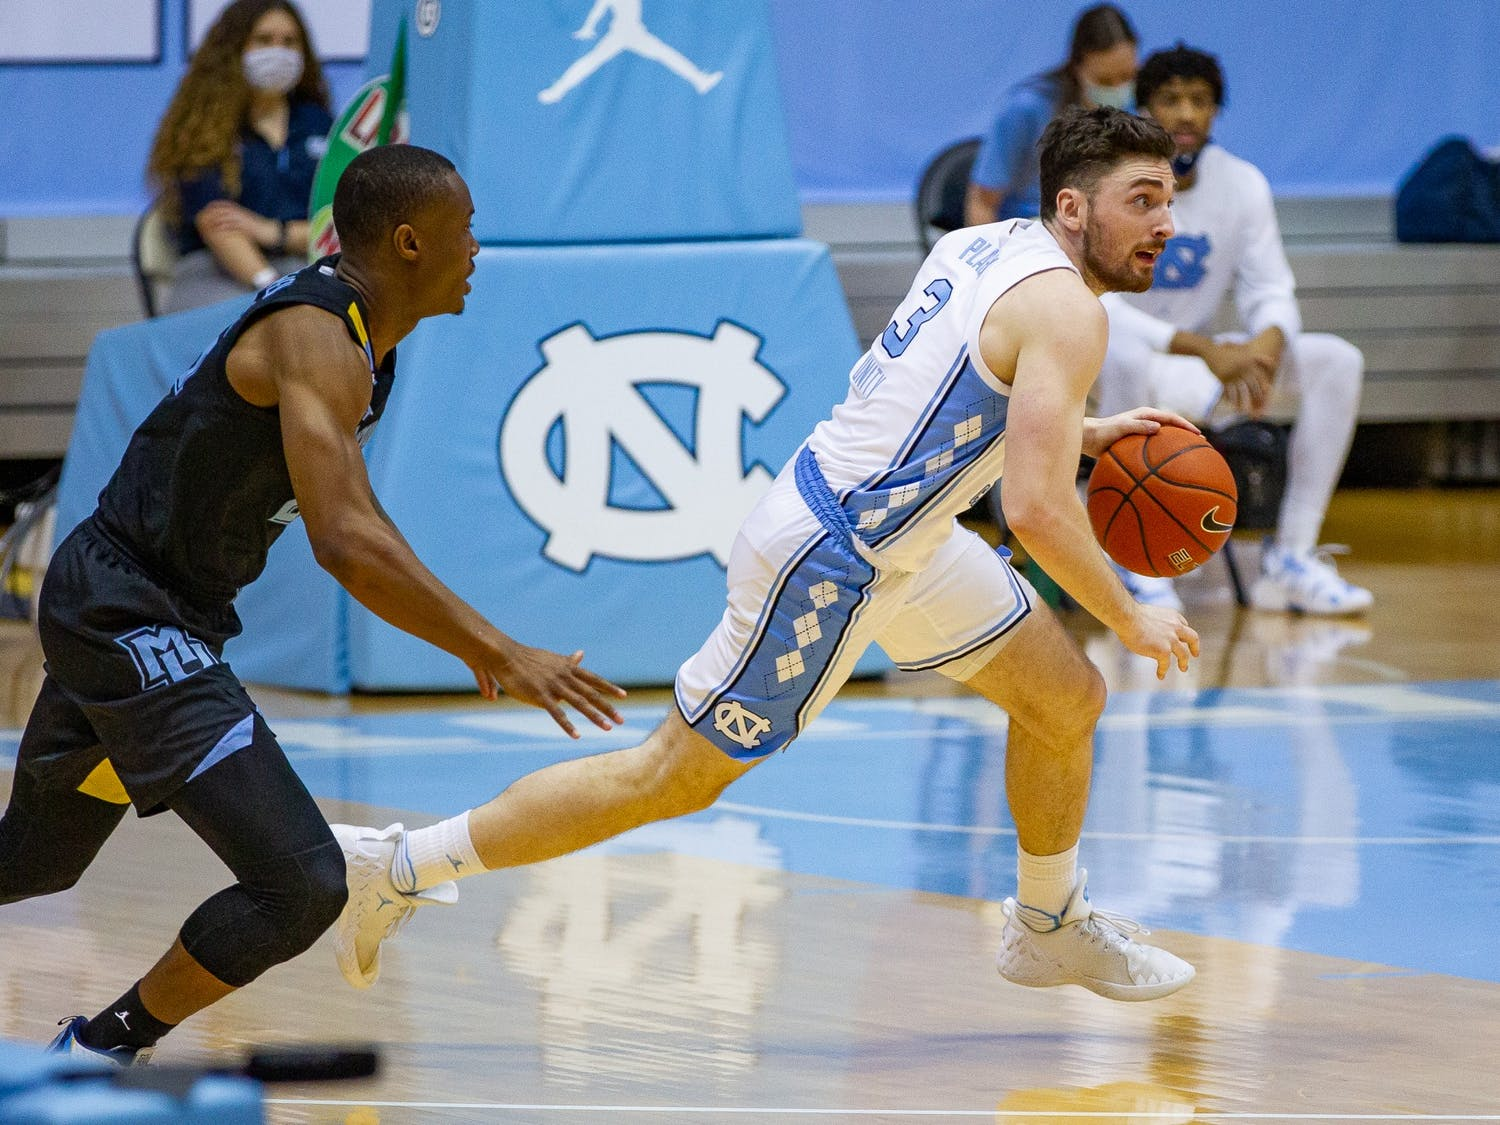 UNC senior guard Andrew Platek (3) dribbles down court during a game against Marquette in the Smith Center on Wednesday, Feb. 24, 202. UNC lost to Marquette 83-70.